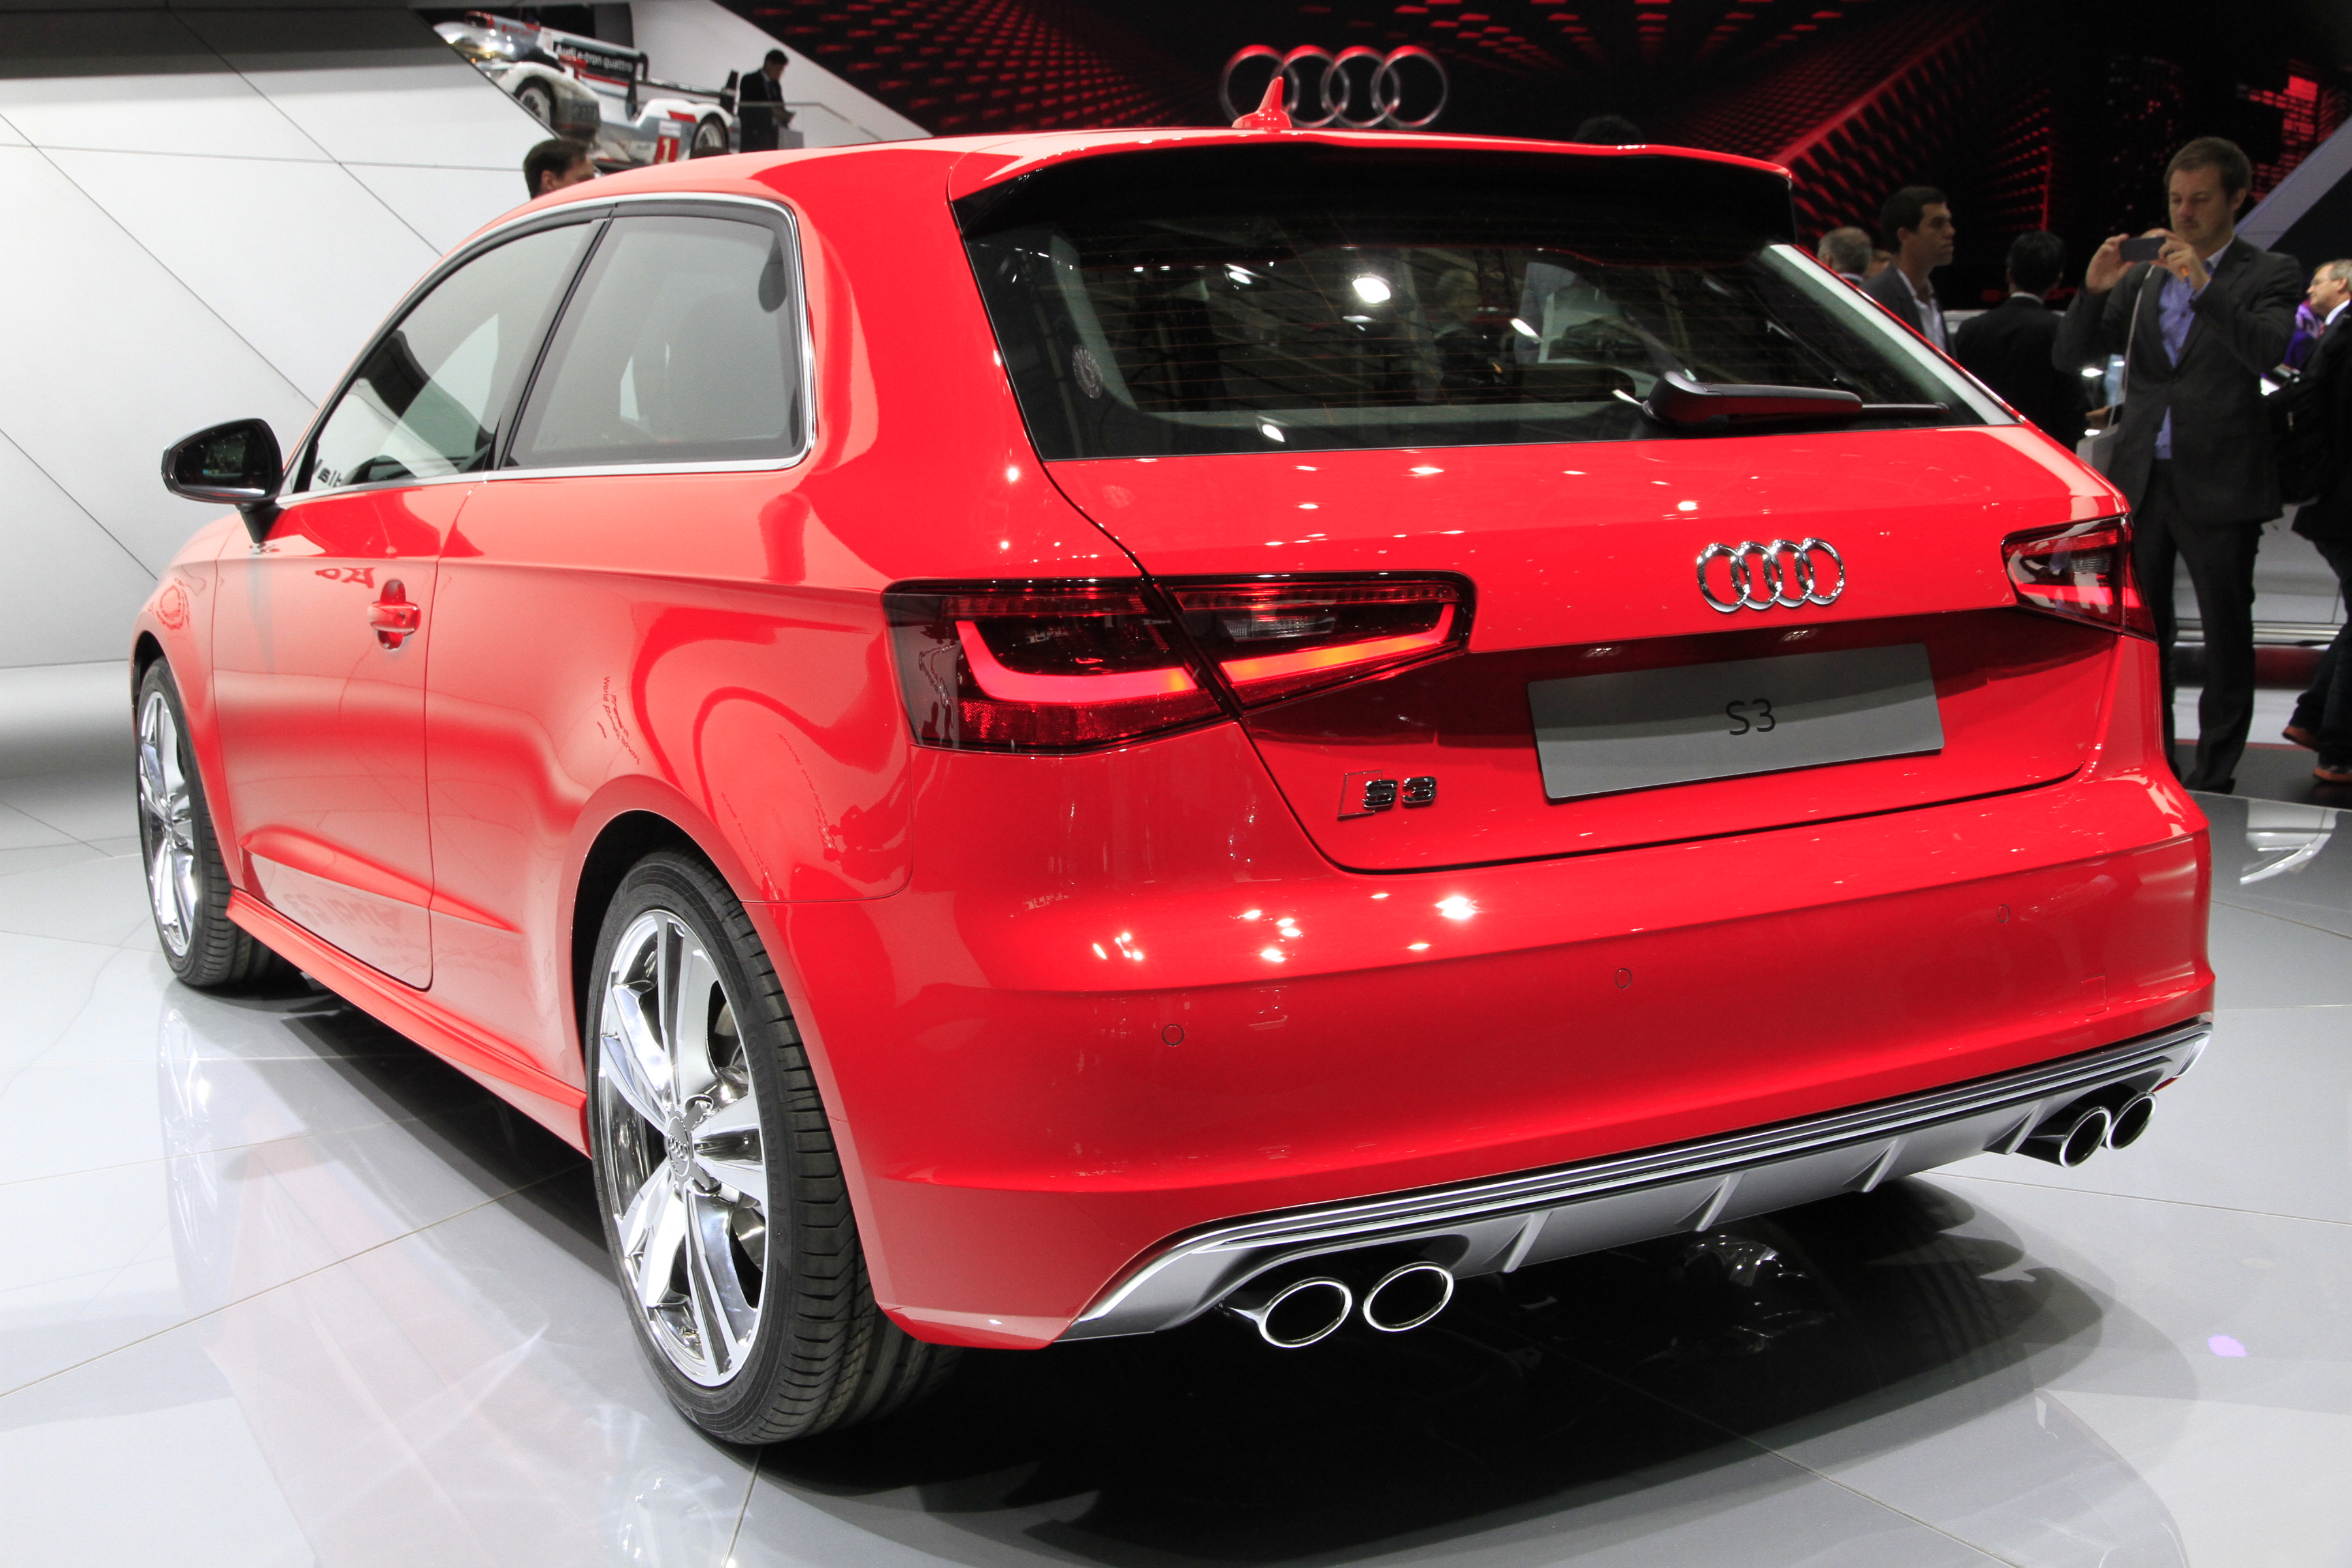 mondial de l 39 auto de paris 2012 audi s3 2013 dark cars wallpapers. Black Bedroom Furniture Sets. Home Design Ideas